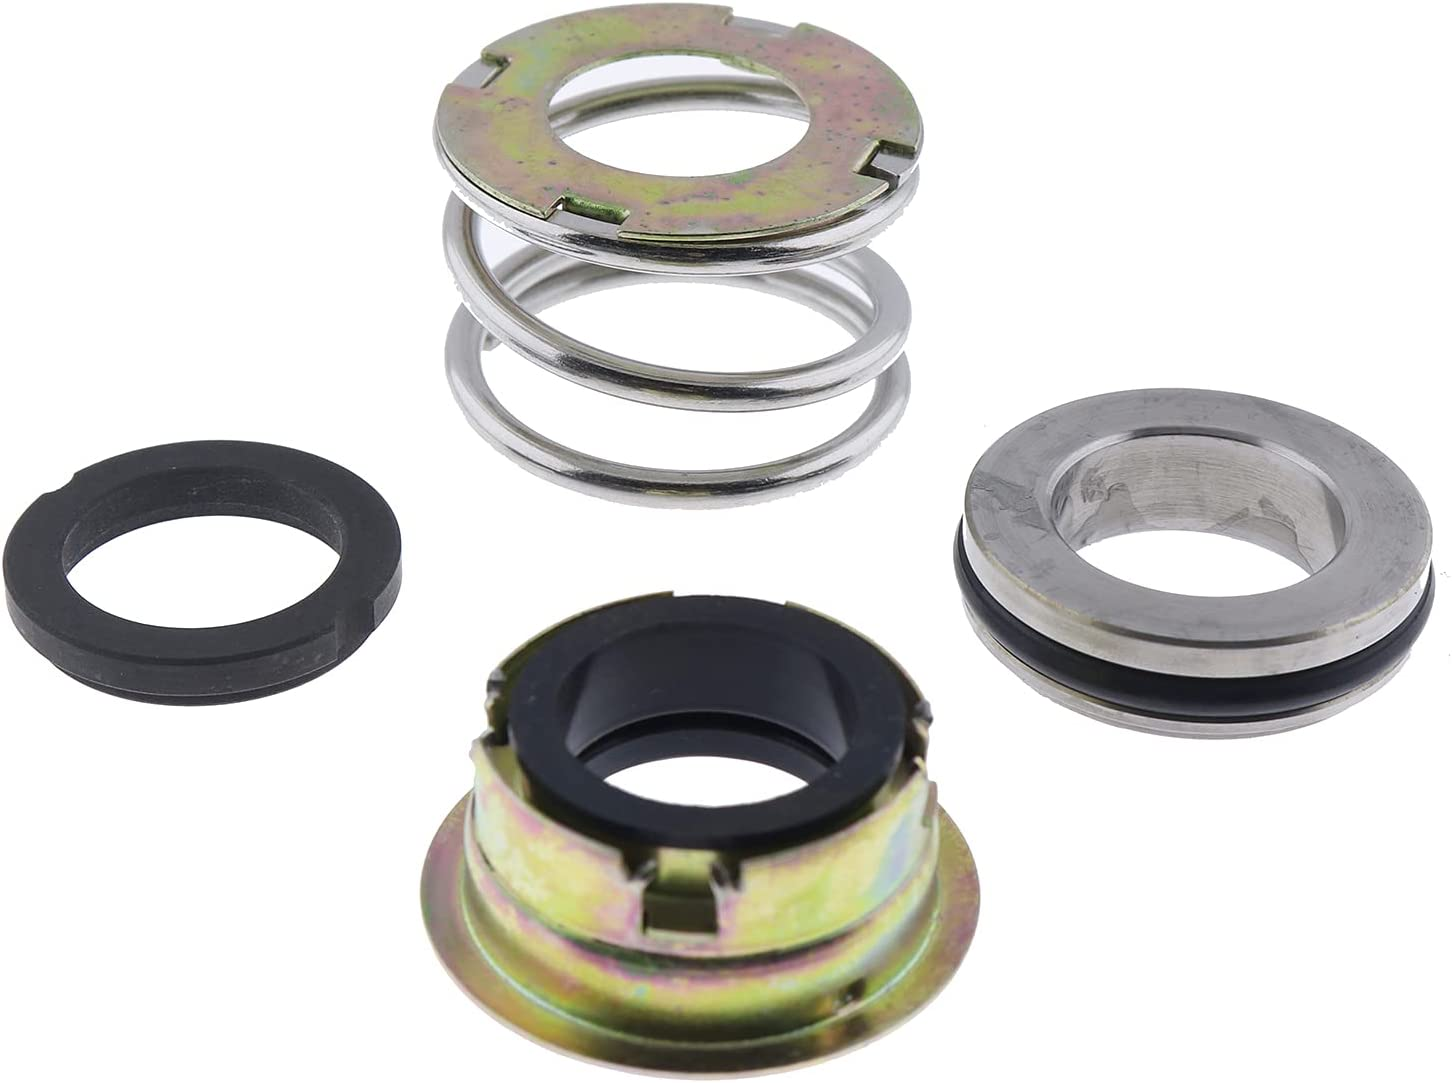 San Diego Mall Solarhome Directly managed store TK-22-899 22-777 Shaft Seal Kit 7 King for Thermo 8